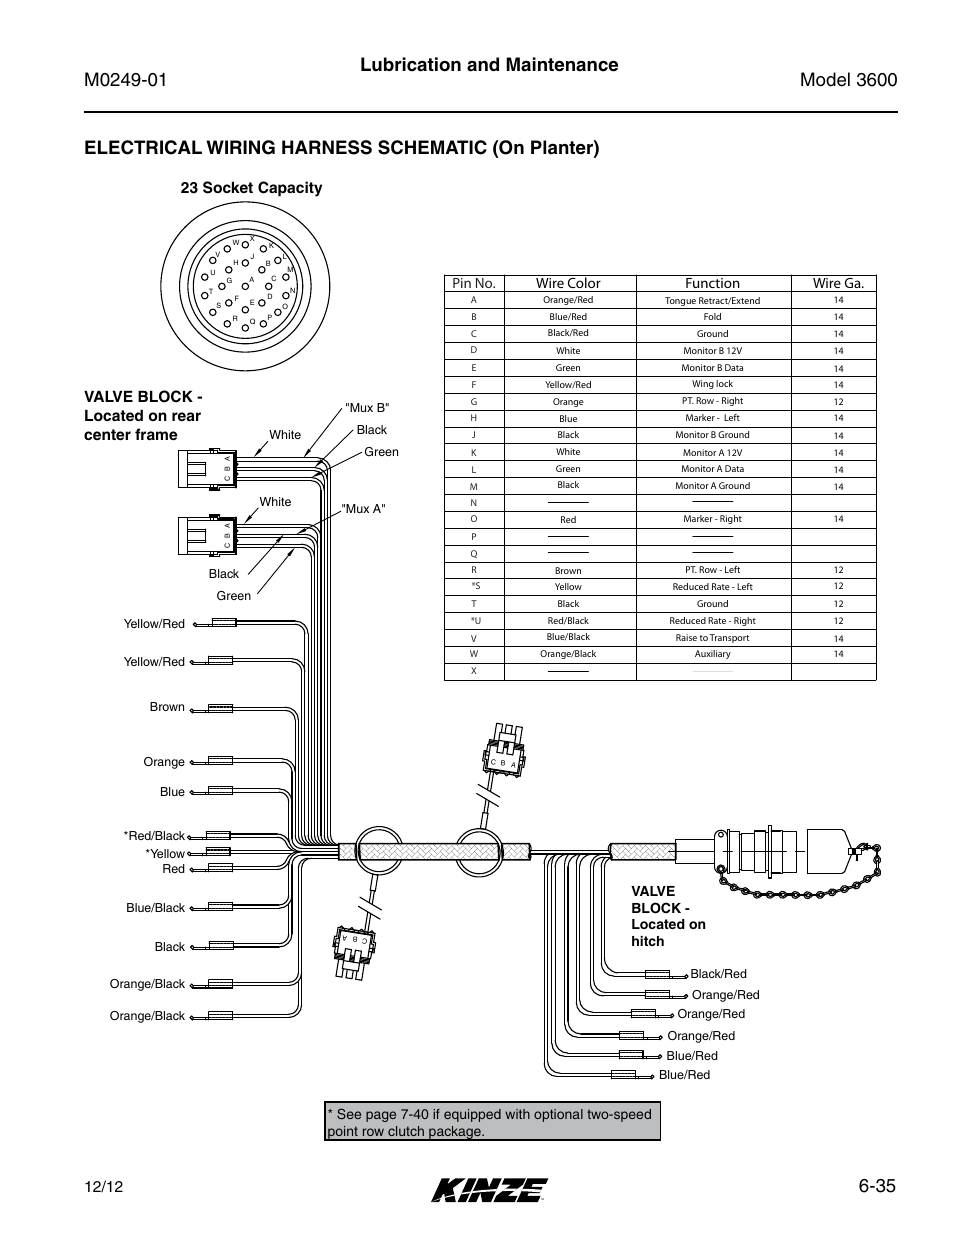 Electrical Wiring Harness Schematic On Planter 35